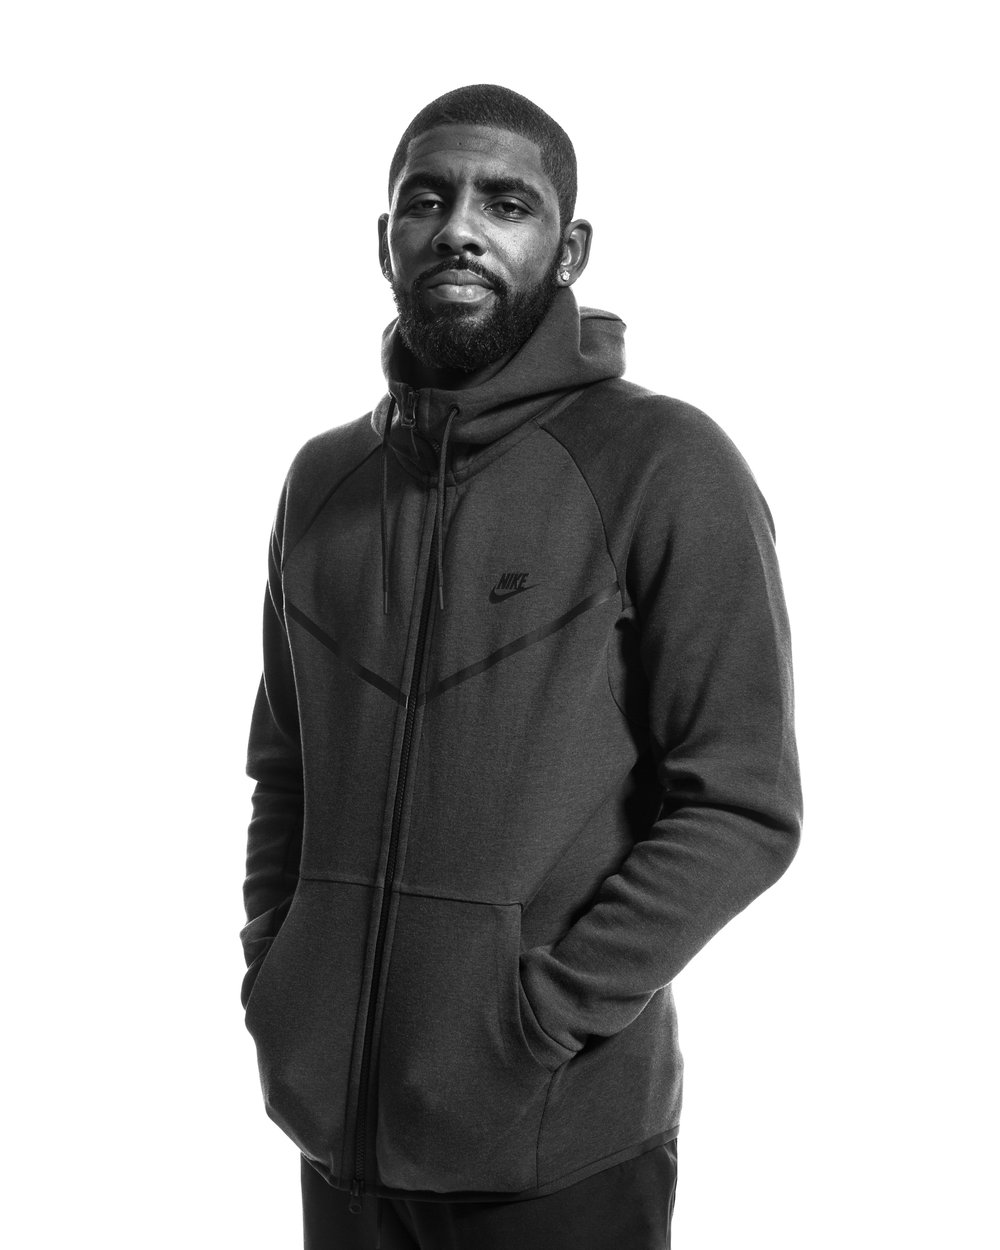 CLEV_FootLocker_Kyrie_NOV_6_160777.jpg